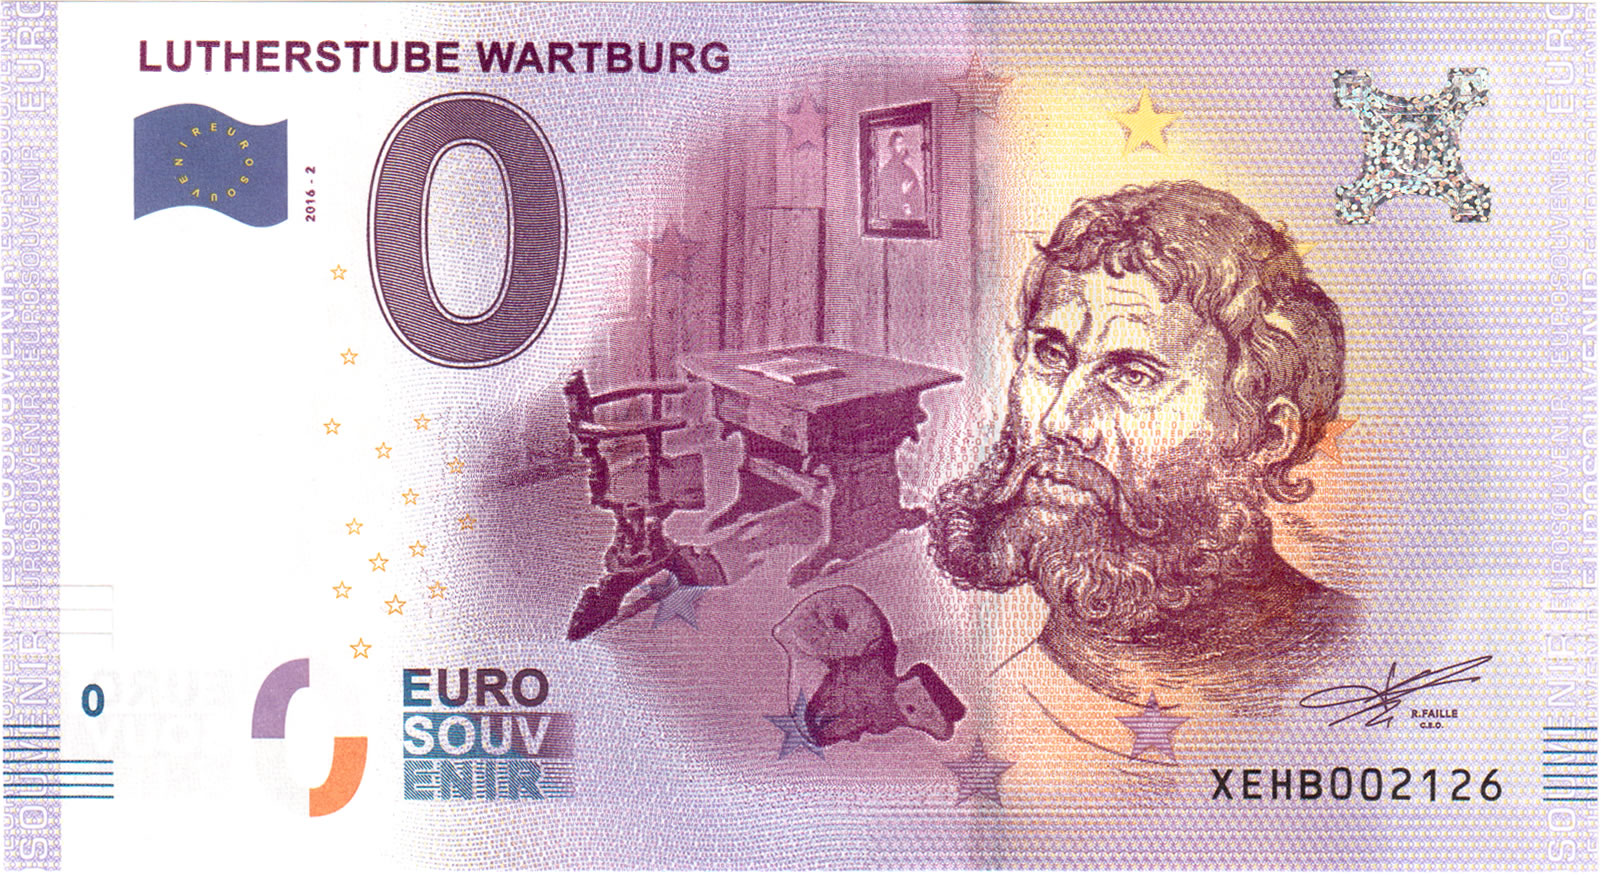 0luther.jpg